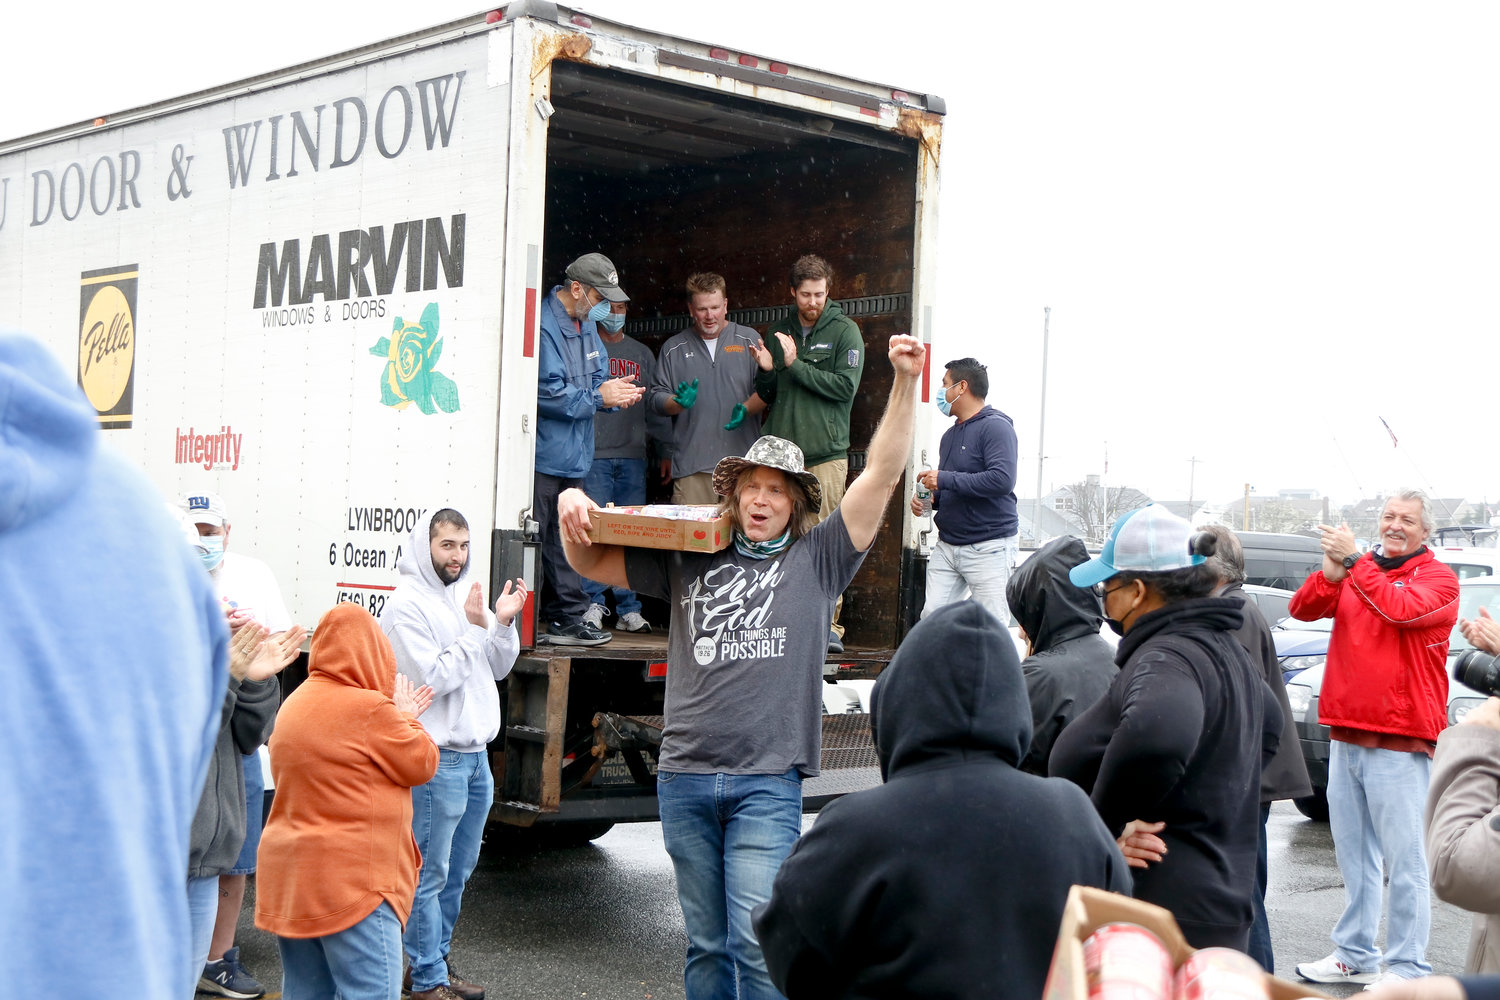 Lynbrook residents Rob and Mary Hallam hosted their annual Move the Food Day event on Sunday, in which they collect and donate food to the Long Island Council of Churches food pantry in Freeport. Rob was excited about the   success of the event.